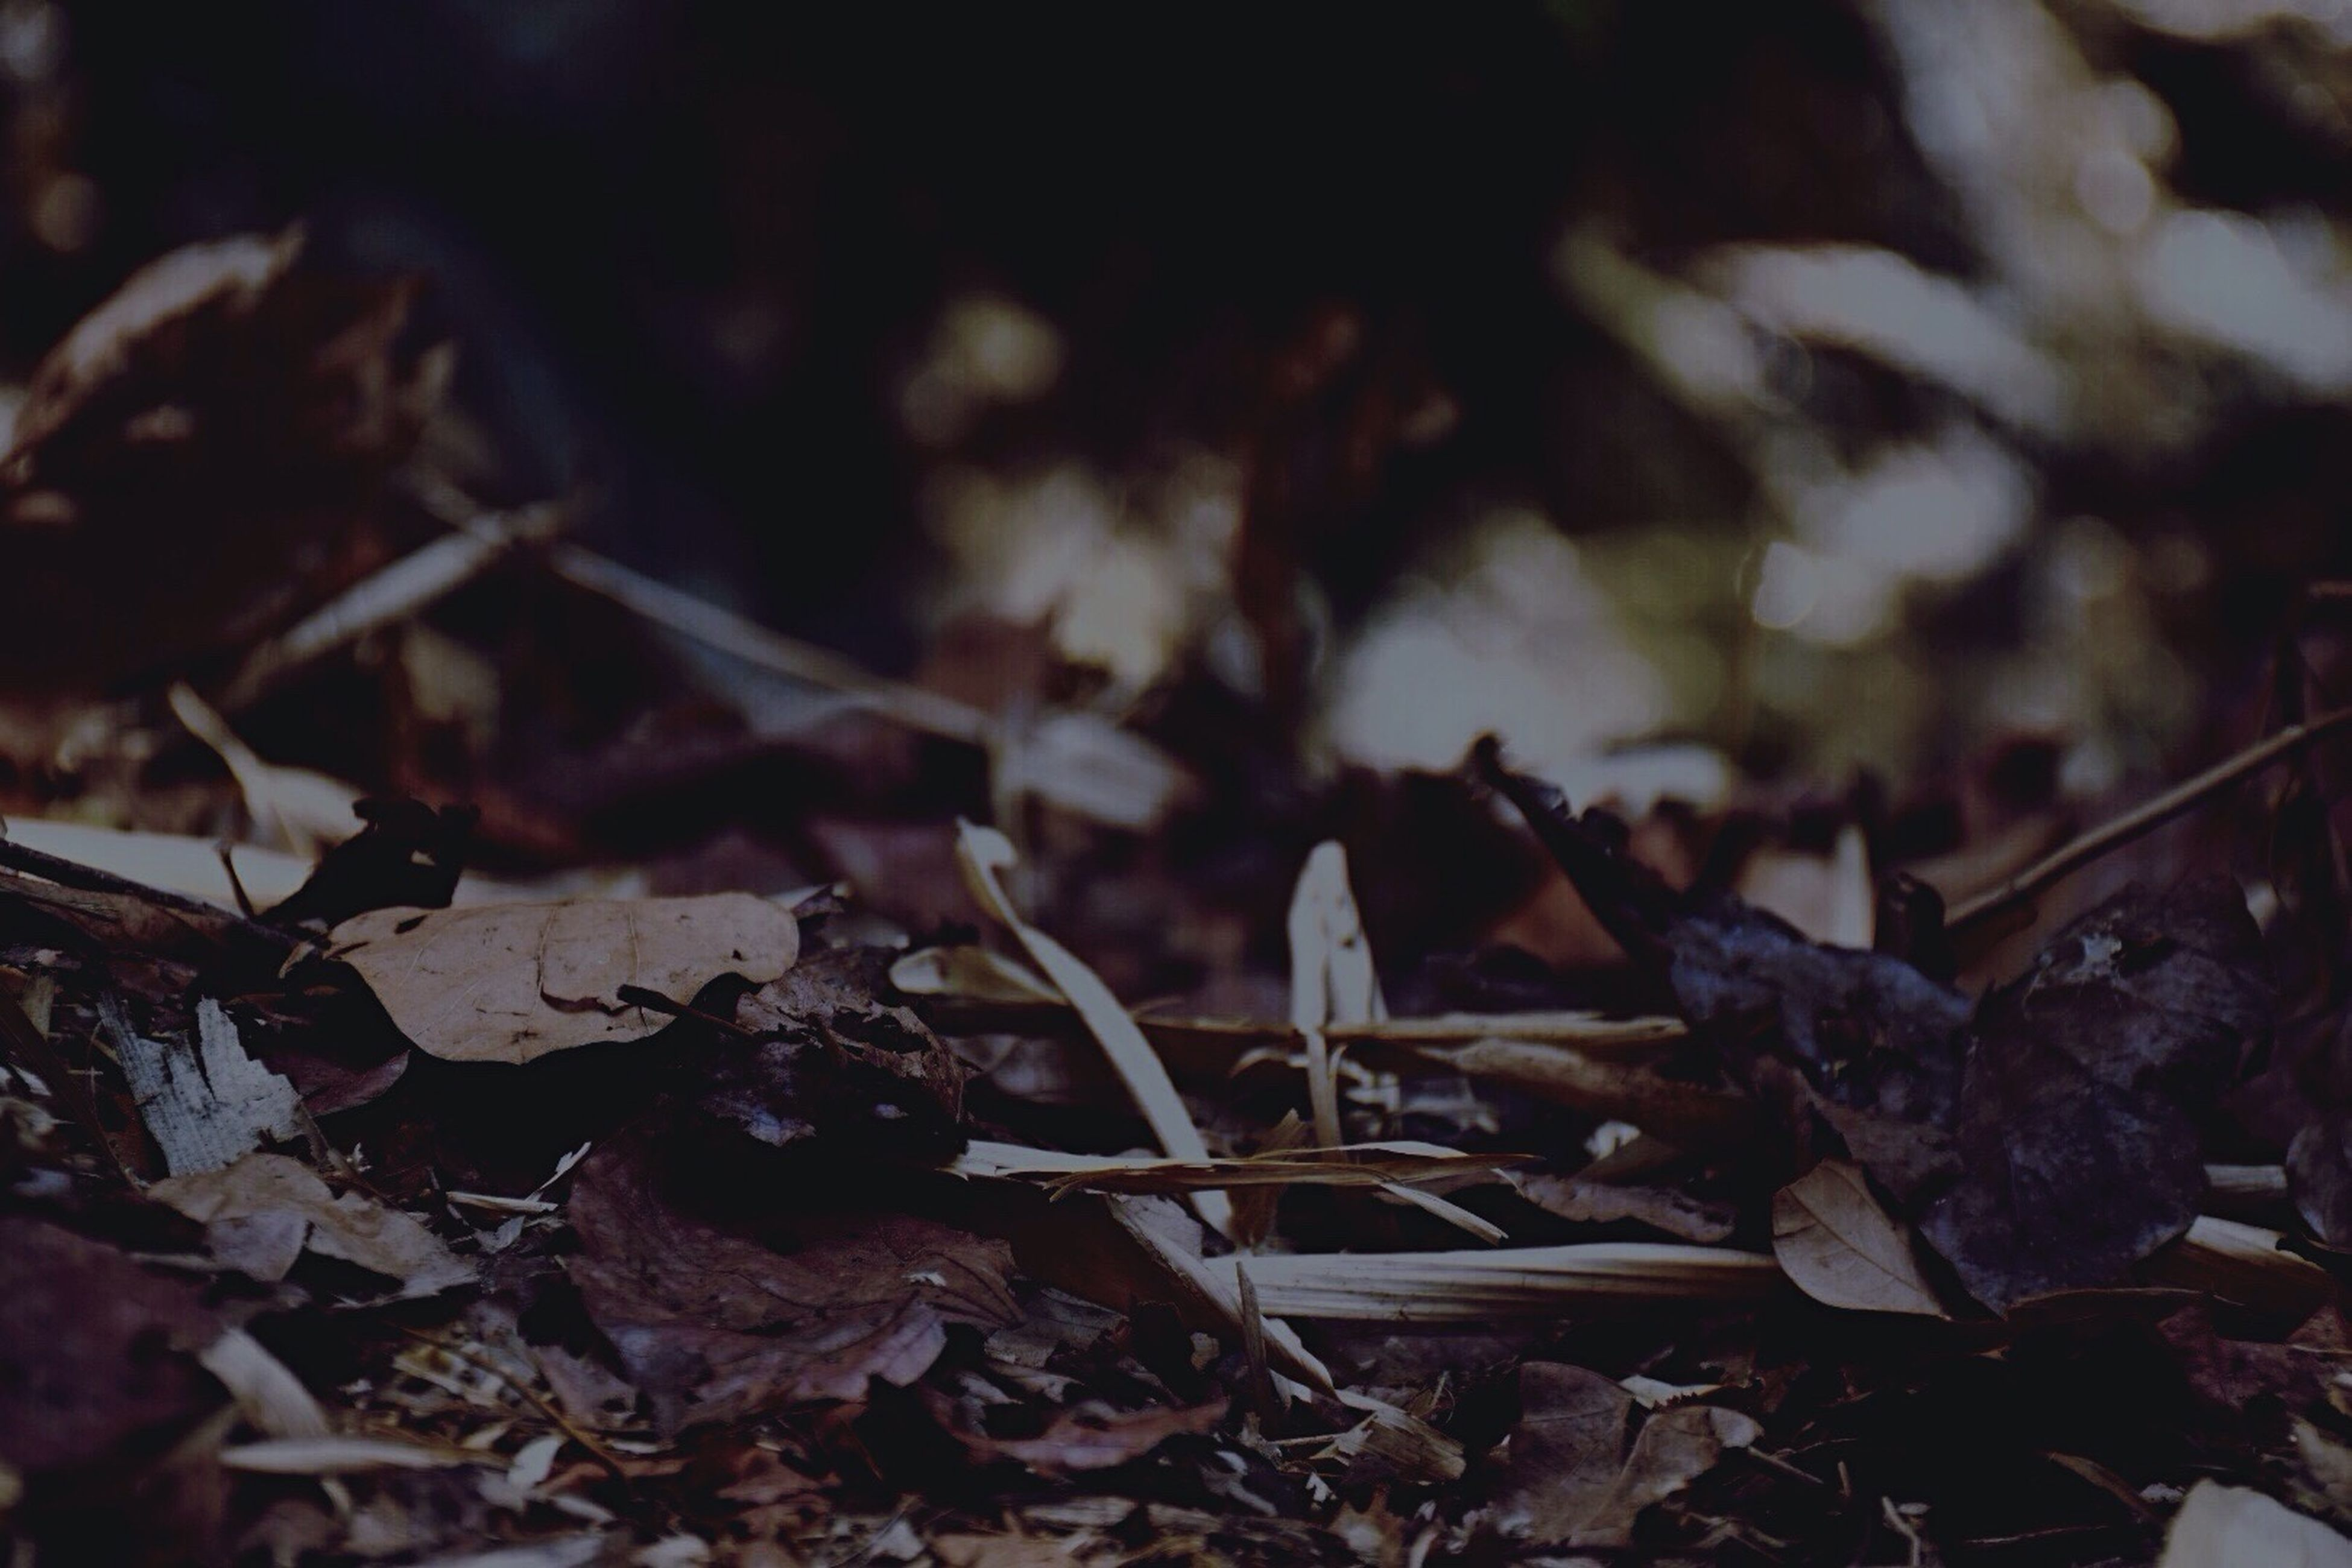 leaf, dry, close-up, focus on foreground, autumn, fallen, leaves, nature, field, selective focus, outdoors, day, change, high angle view, abandoned, no people, ground, season, damaged, messy